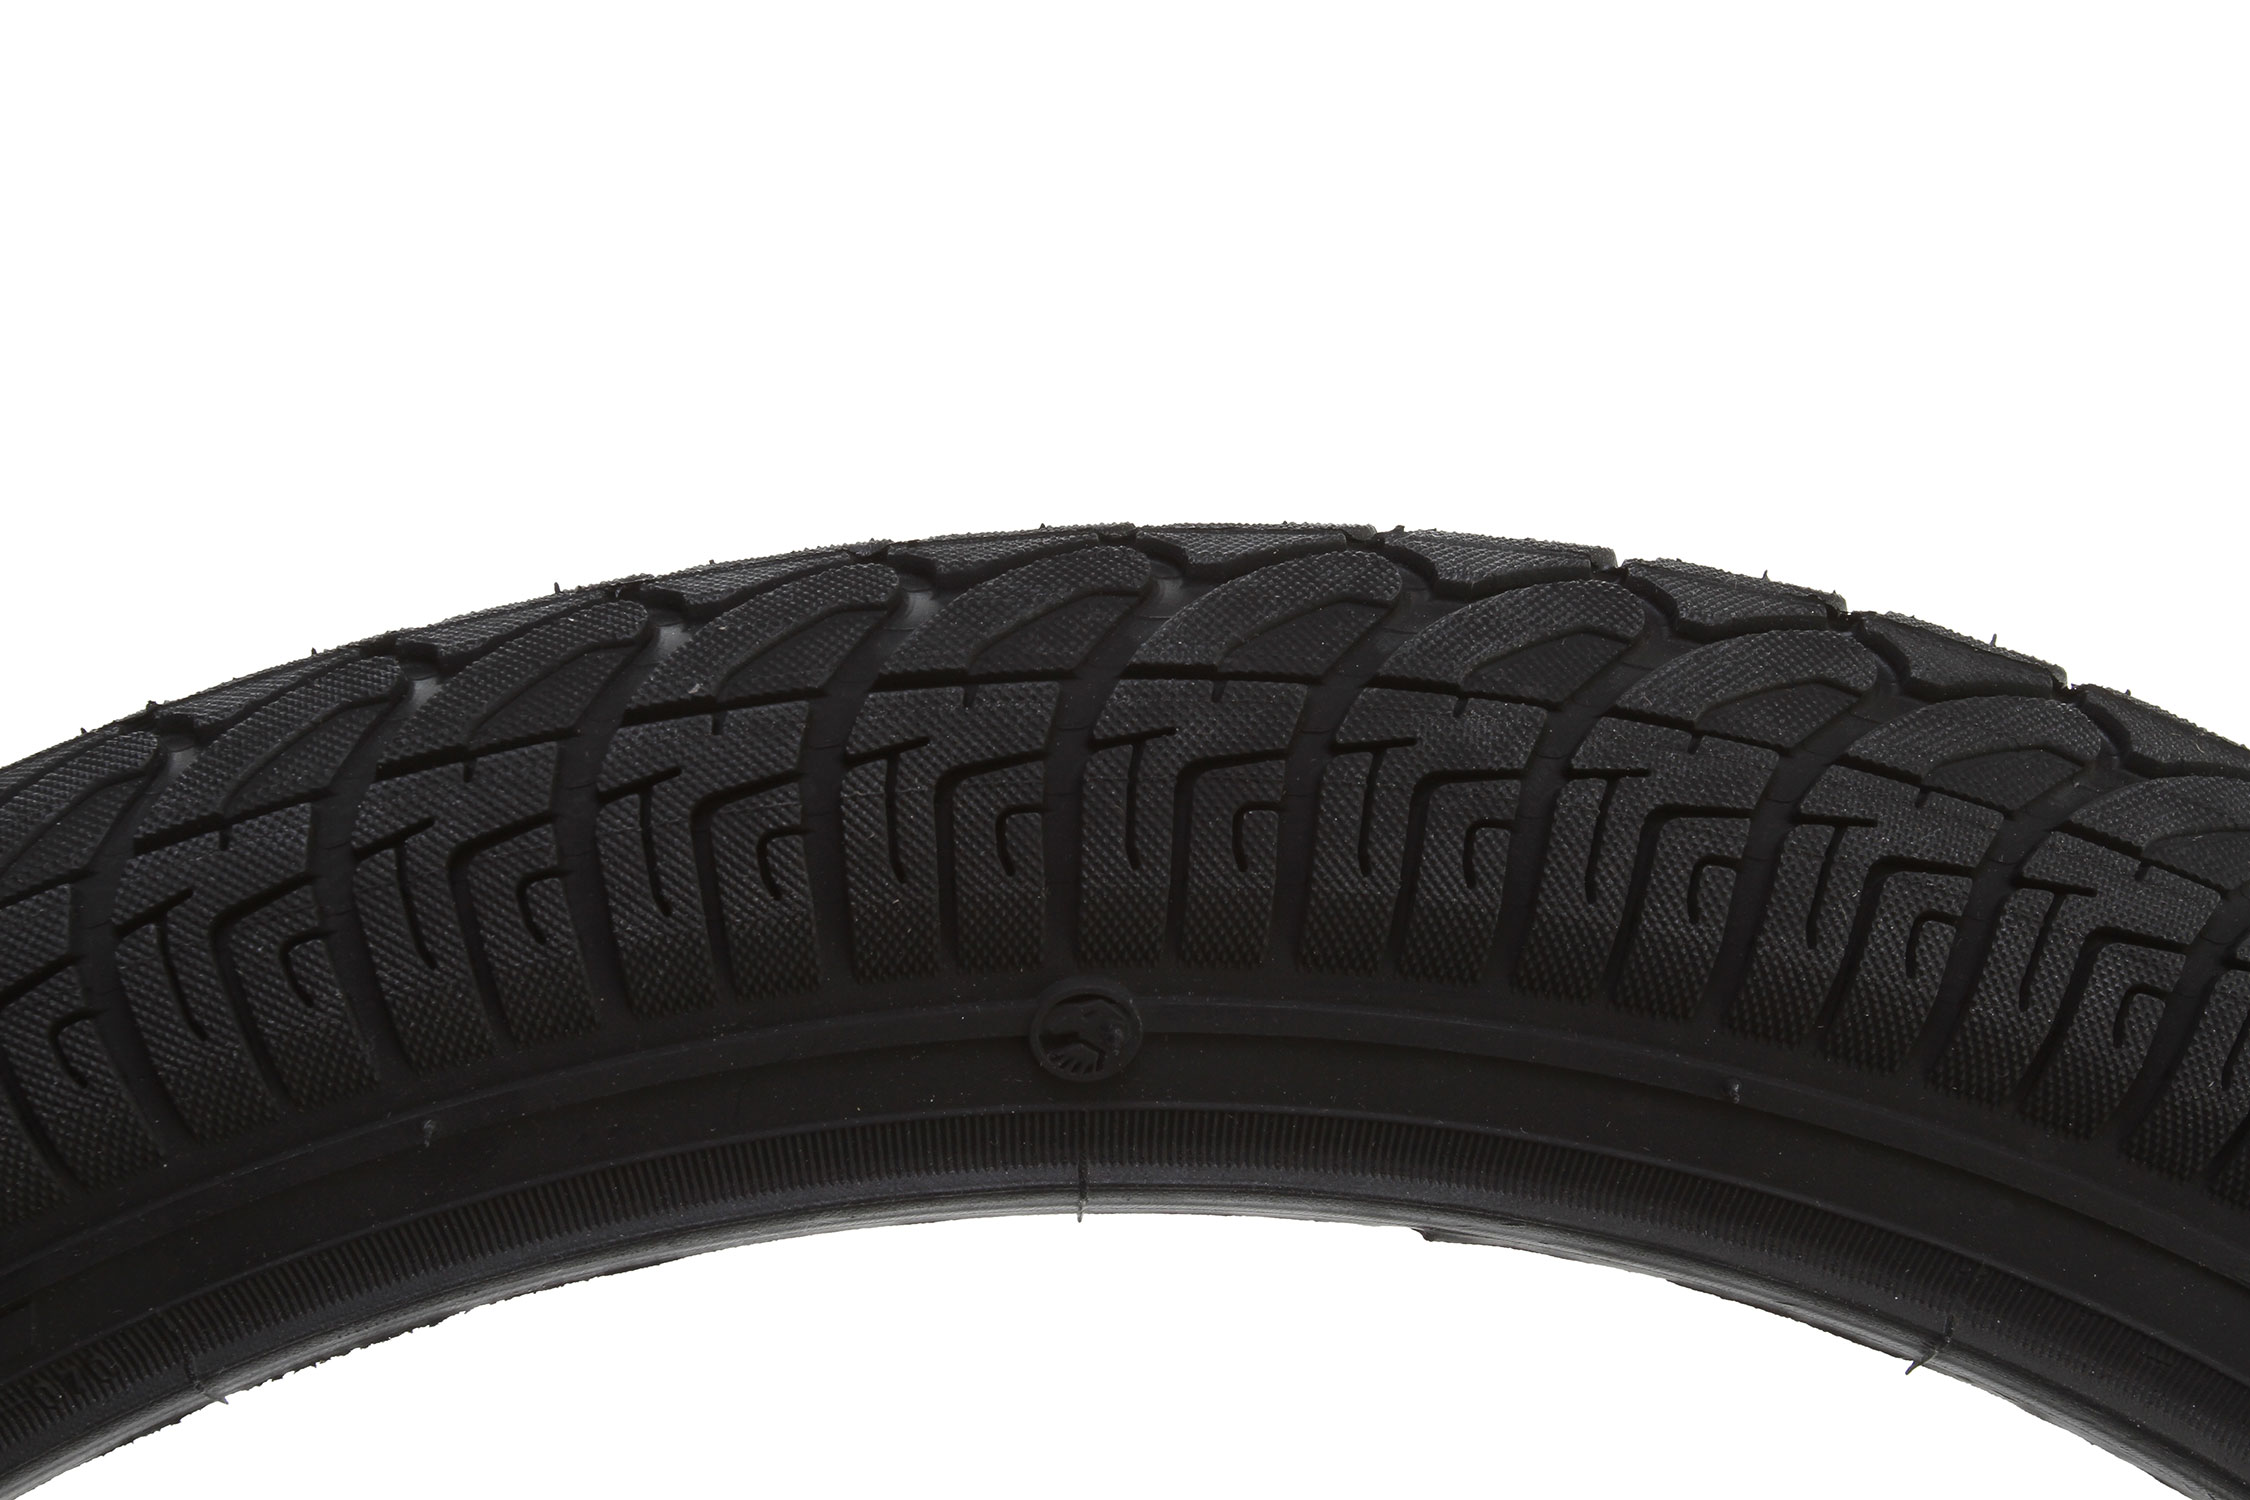 "BMX Key Features of the The Shadow Conspiracy Undertaker Wire Bead Bike Tire Black 20 X 2.25"": Designed for dirt, park, and street Super grippy rubber compound Intended Use: BMX Tire Type: Clincher Tire Diameter: 20"" Labeled Width: 2.25 ISO Width: 54 mm ISO Diameter: 406 / 20"" BMX Tire Bead: Steel PSI: 110 PSI Weight: 771.0 g Wght/Dims: 1.645 lbs. 20.5 x 20.5 x 1 - $28.95"